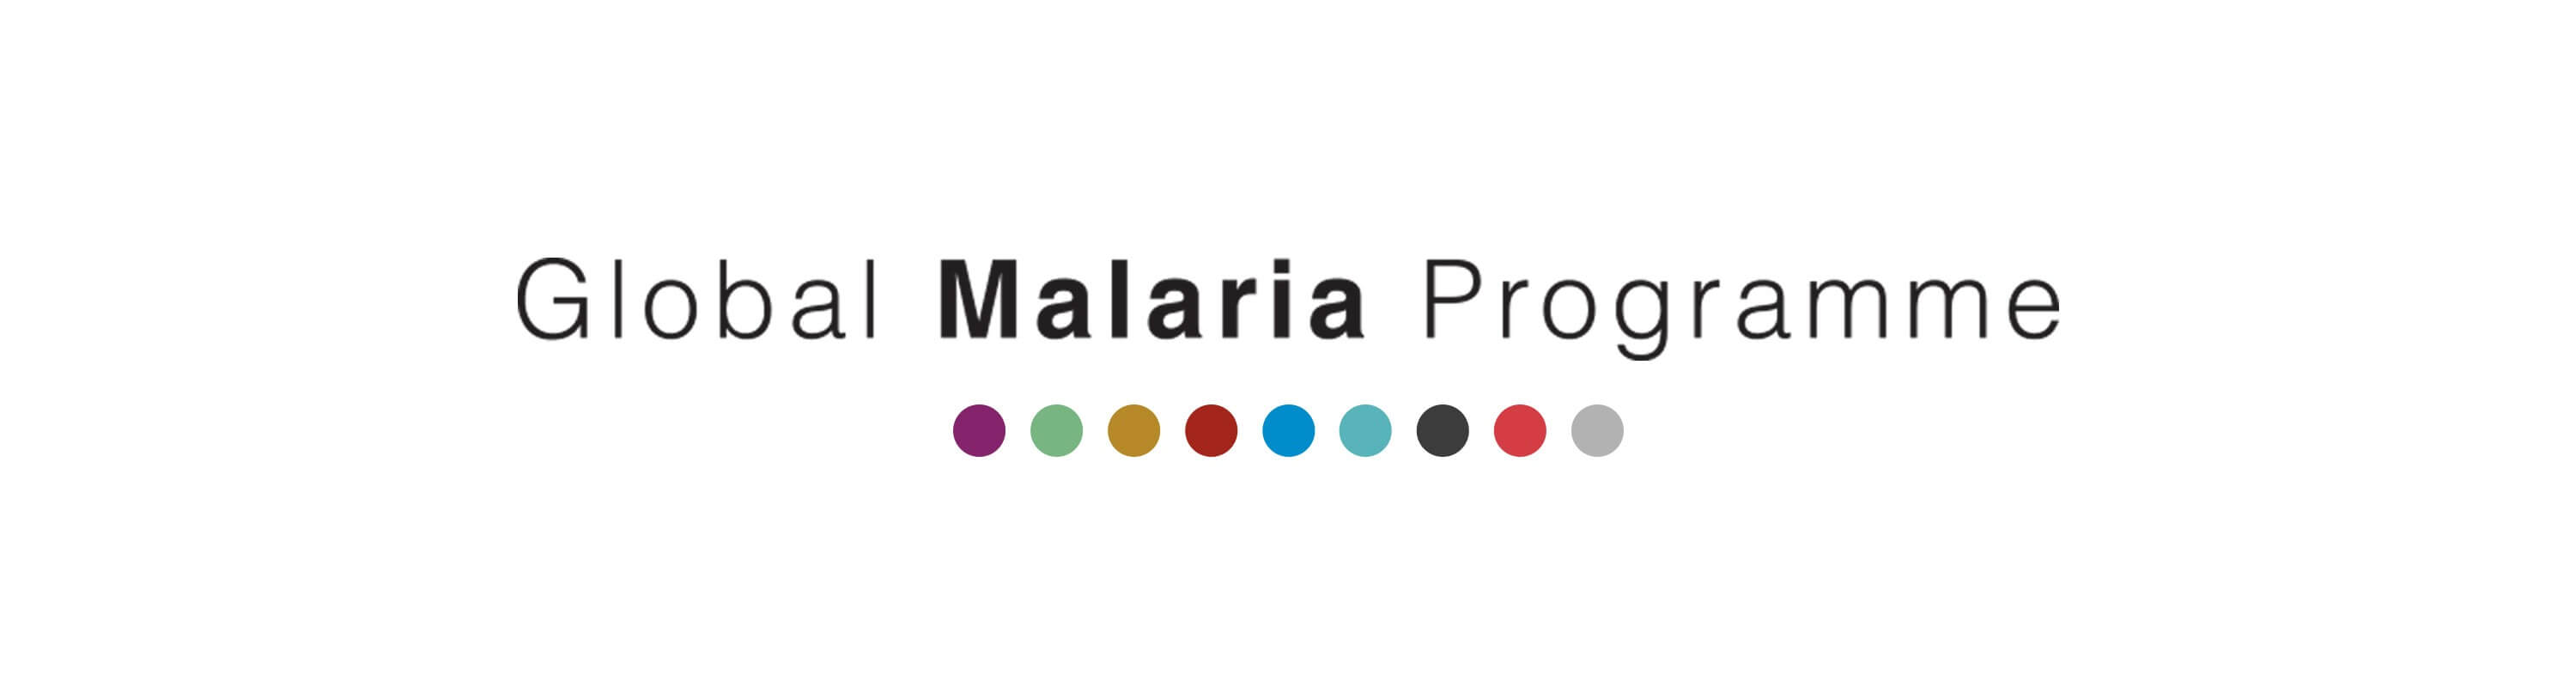 World Health Organization - Global Malaria Programme - Blossom